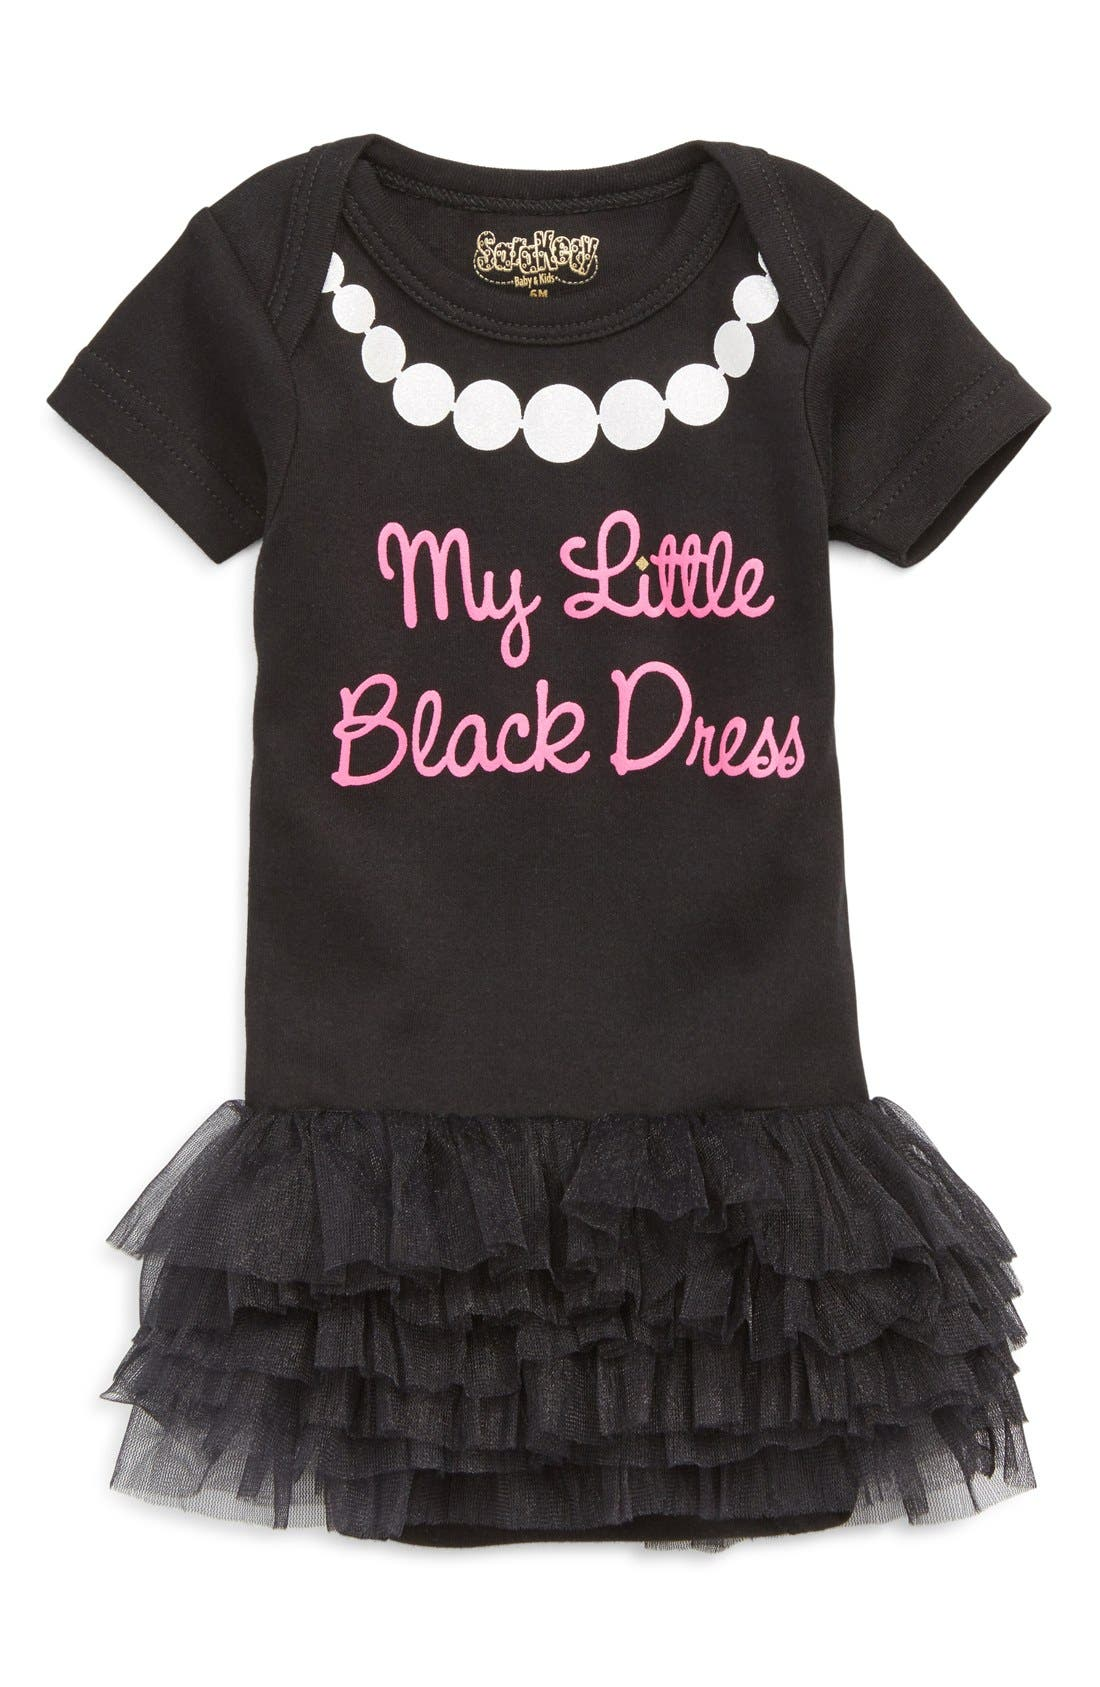 'Black Dress' Tutu Bodysuit,                             Main thumbnail 1, color,                             BLACK